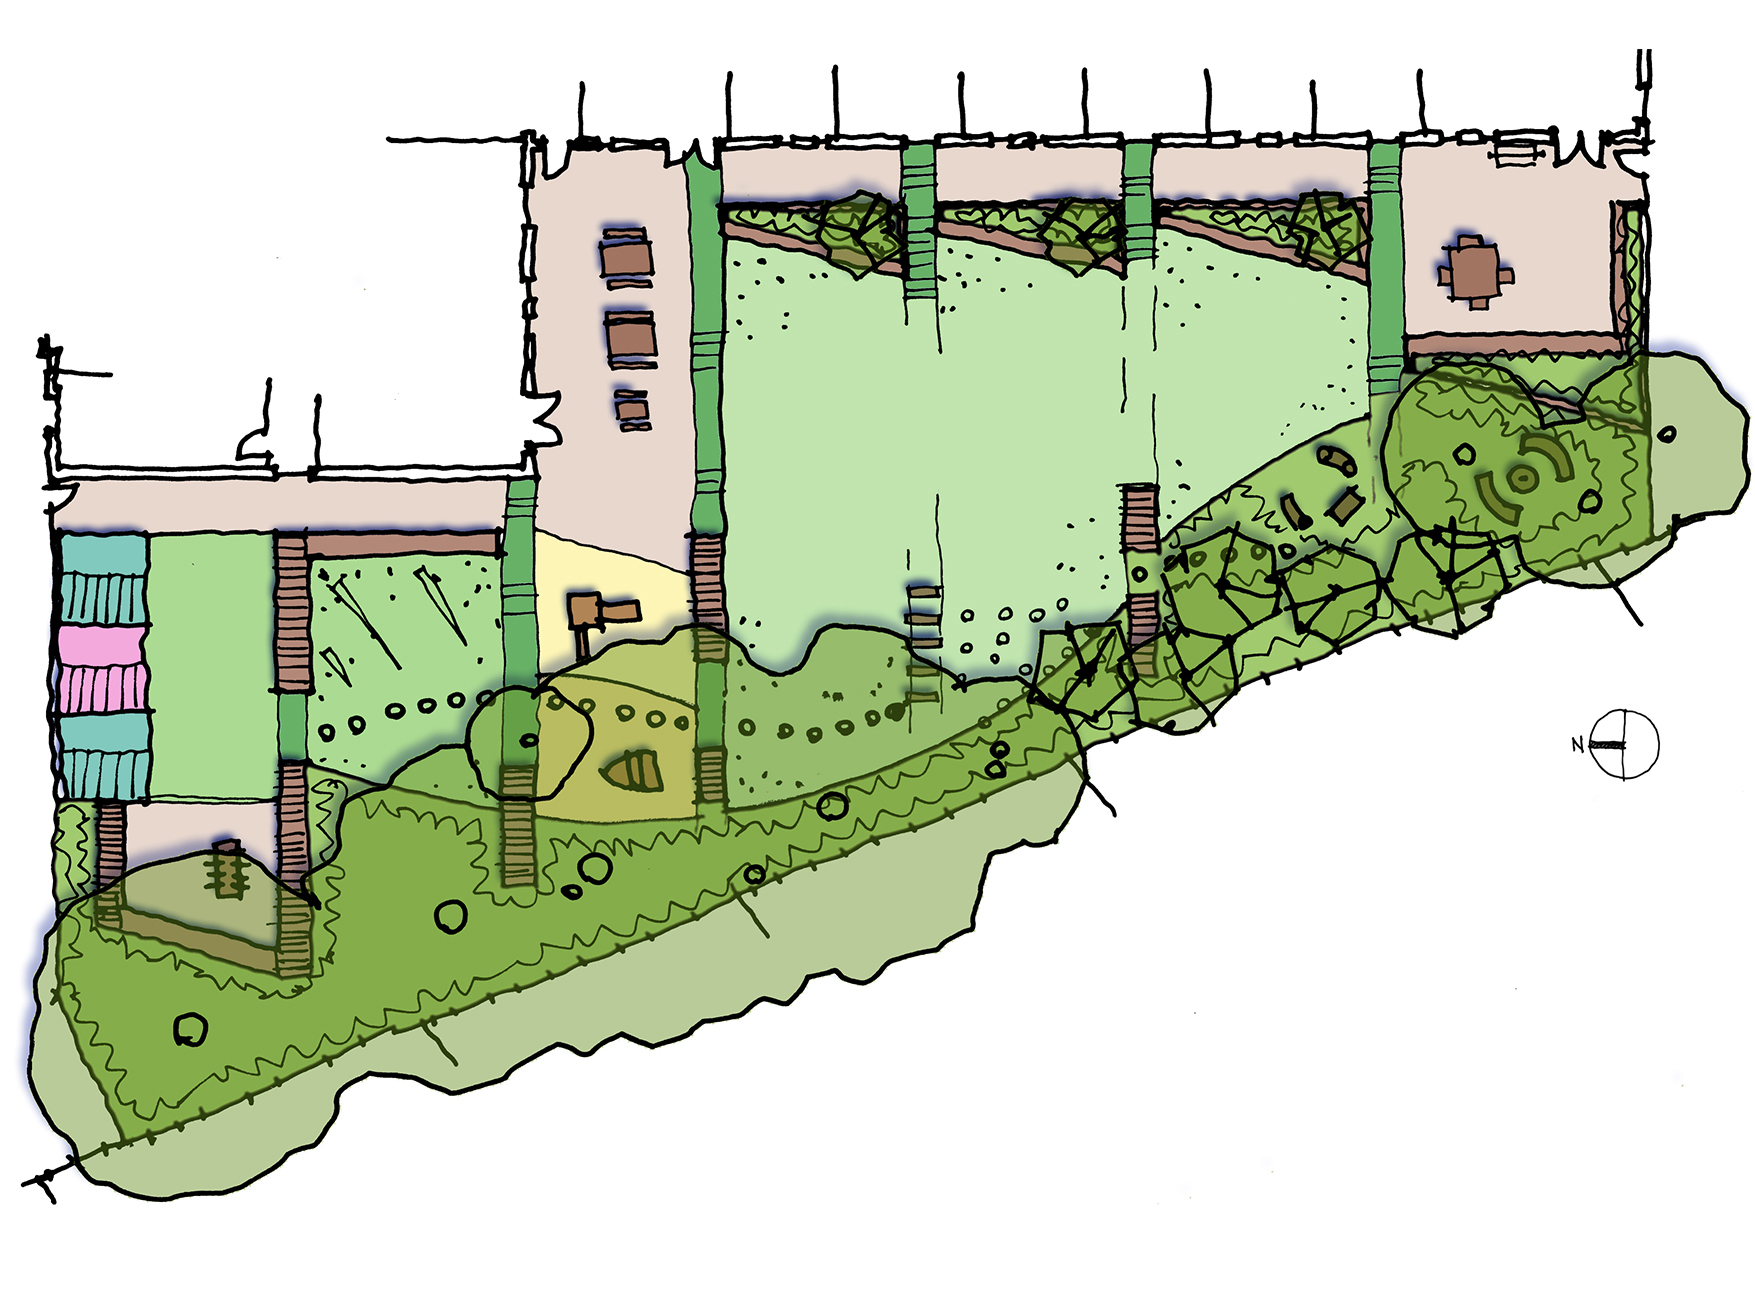 Concept sketch for the garden - based on a previous building layout